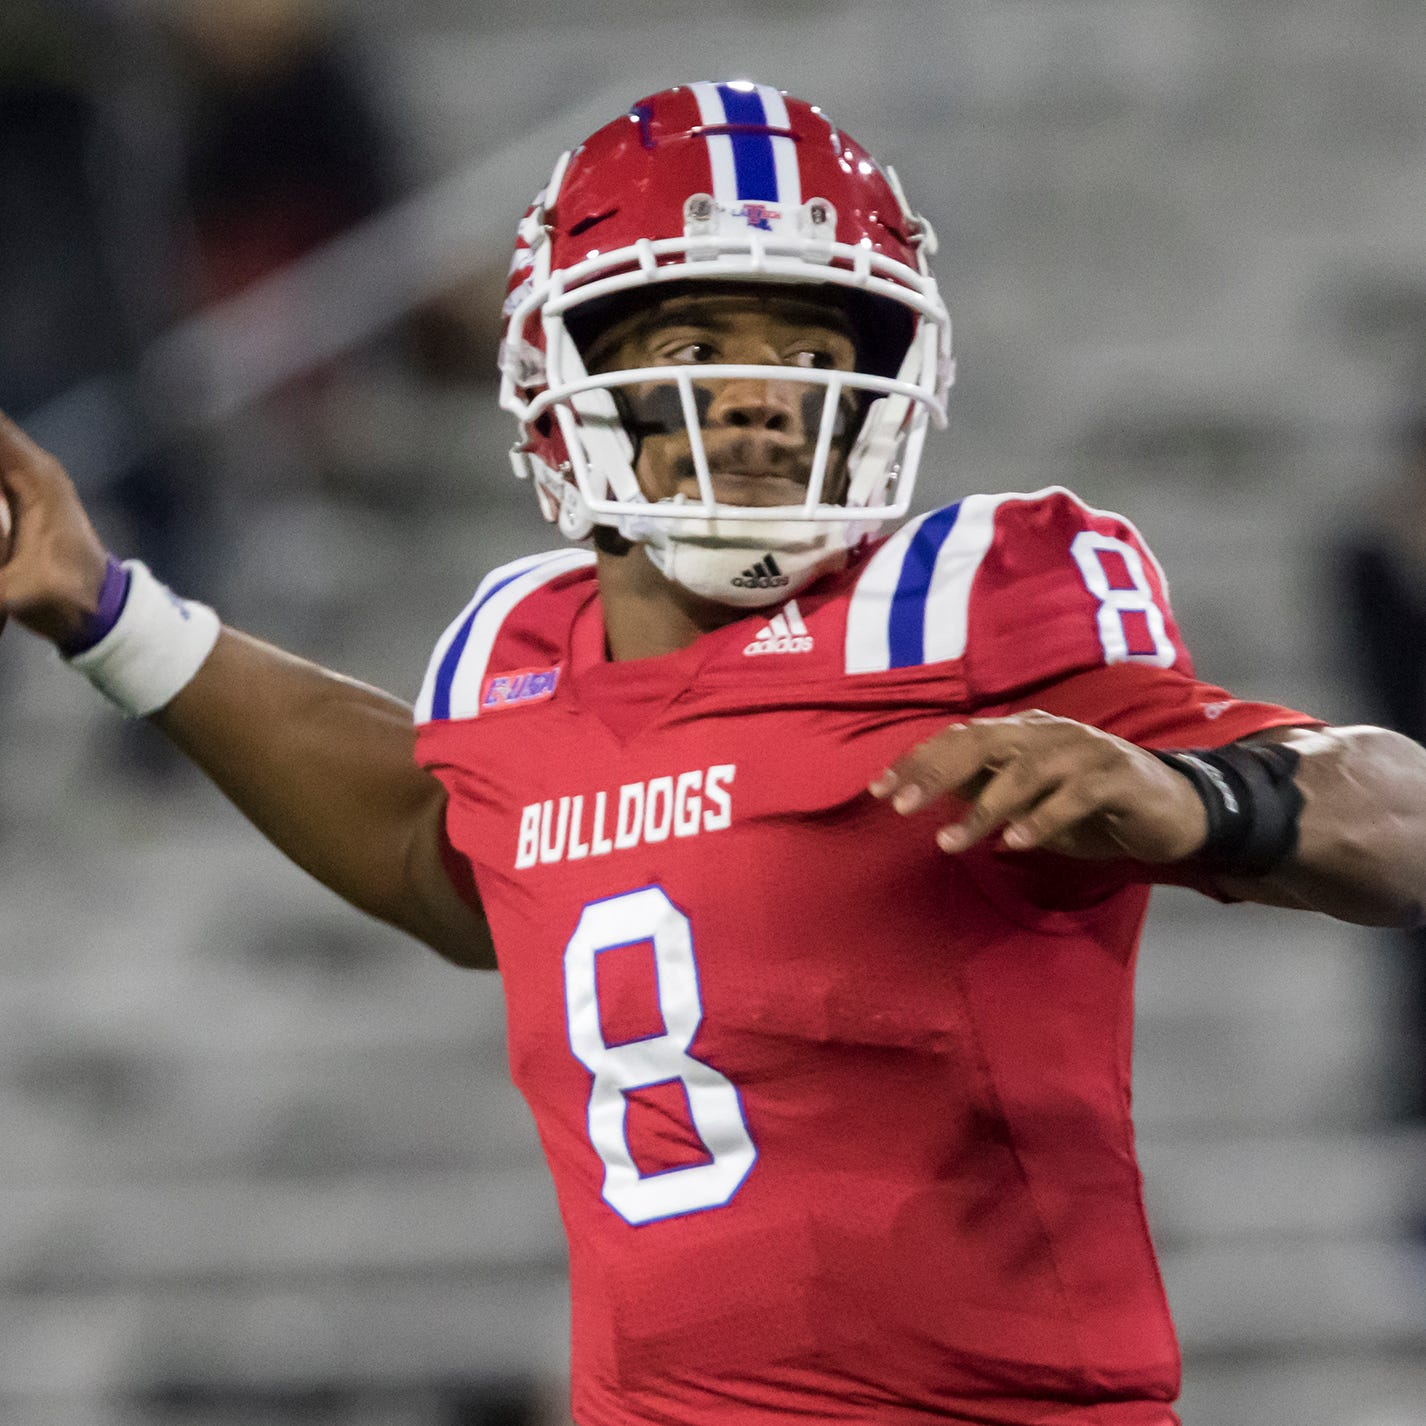 Louisiana Tech's Skip Holtz wants to see more from QB J'Mar Smith